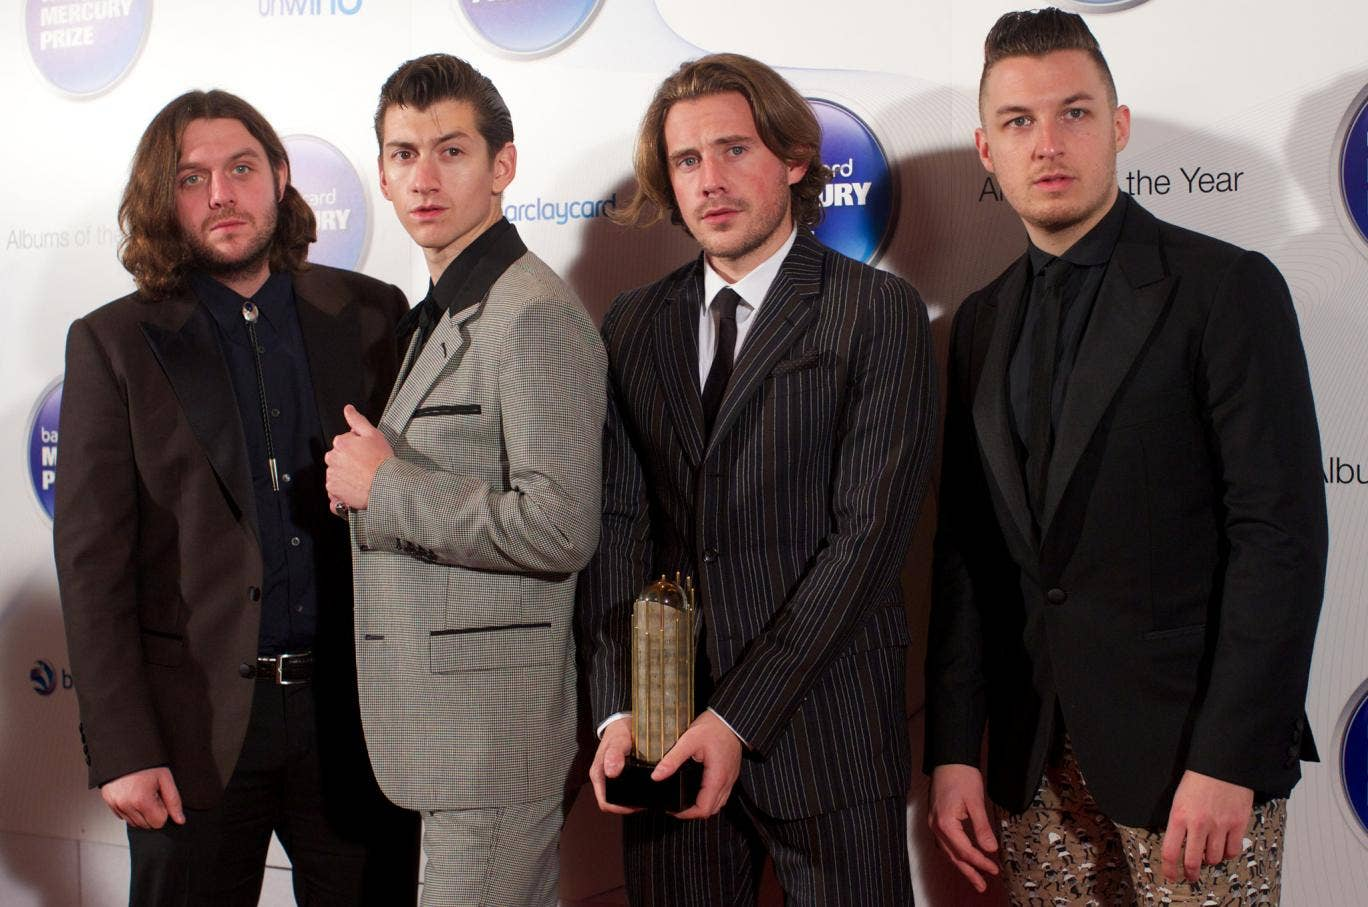 Arctic Monkeys pose with their Albums of the Year trophy at the 2013 Mercury Prize